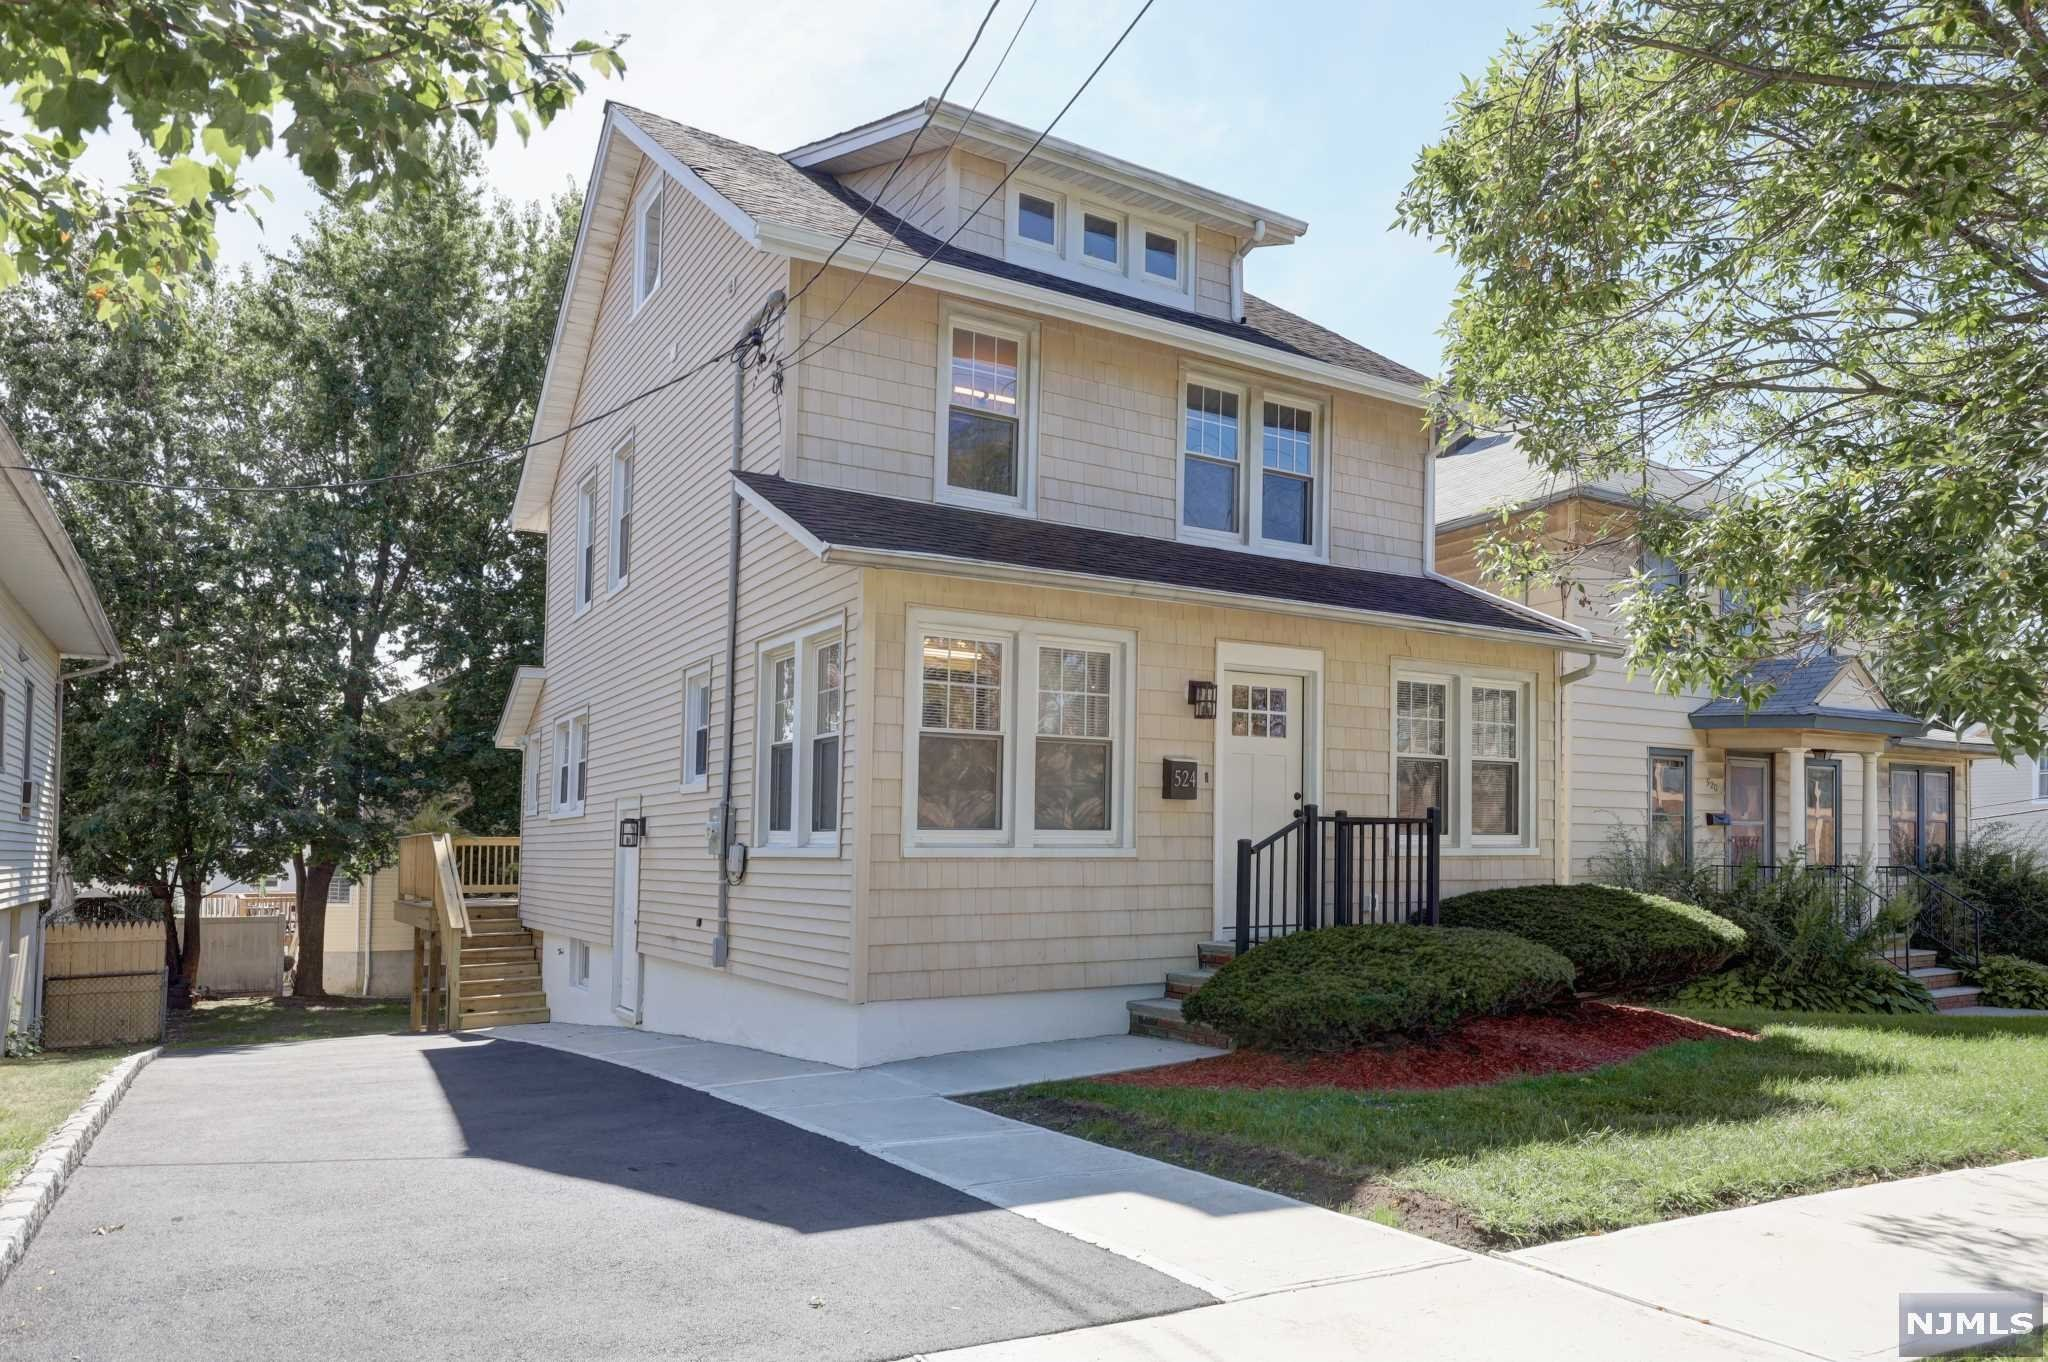 524 Rutherford Avenue A Luxury Home For Sale In Lyndhurst Bergen County New Jersey Property Id 20034582 Christie S International Real Estate